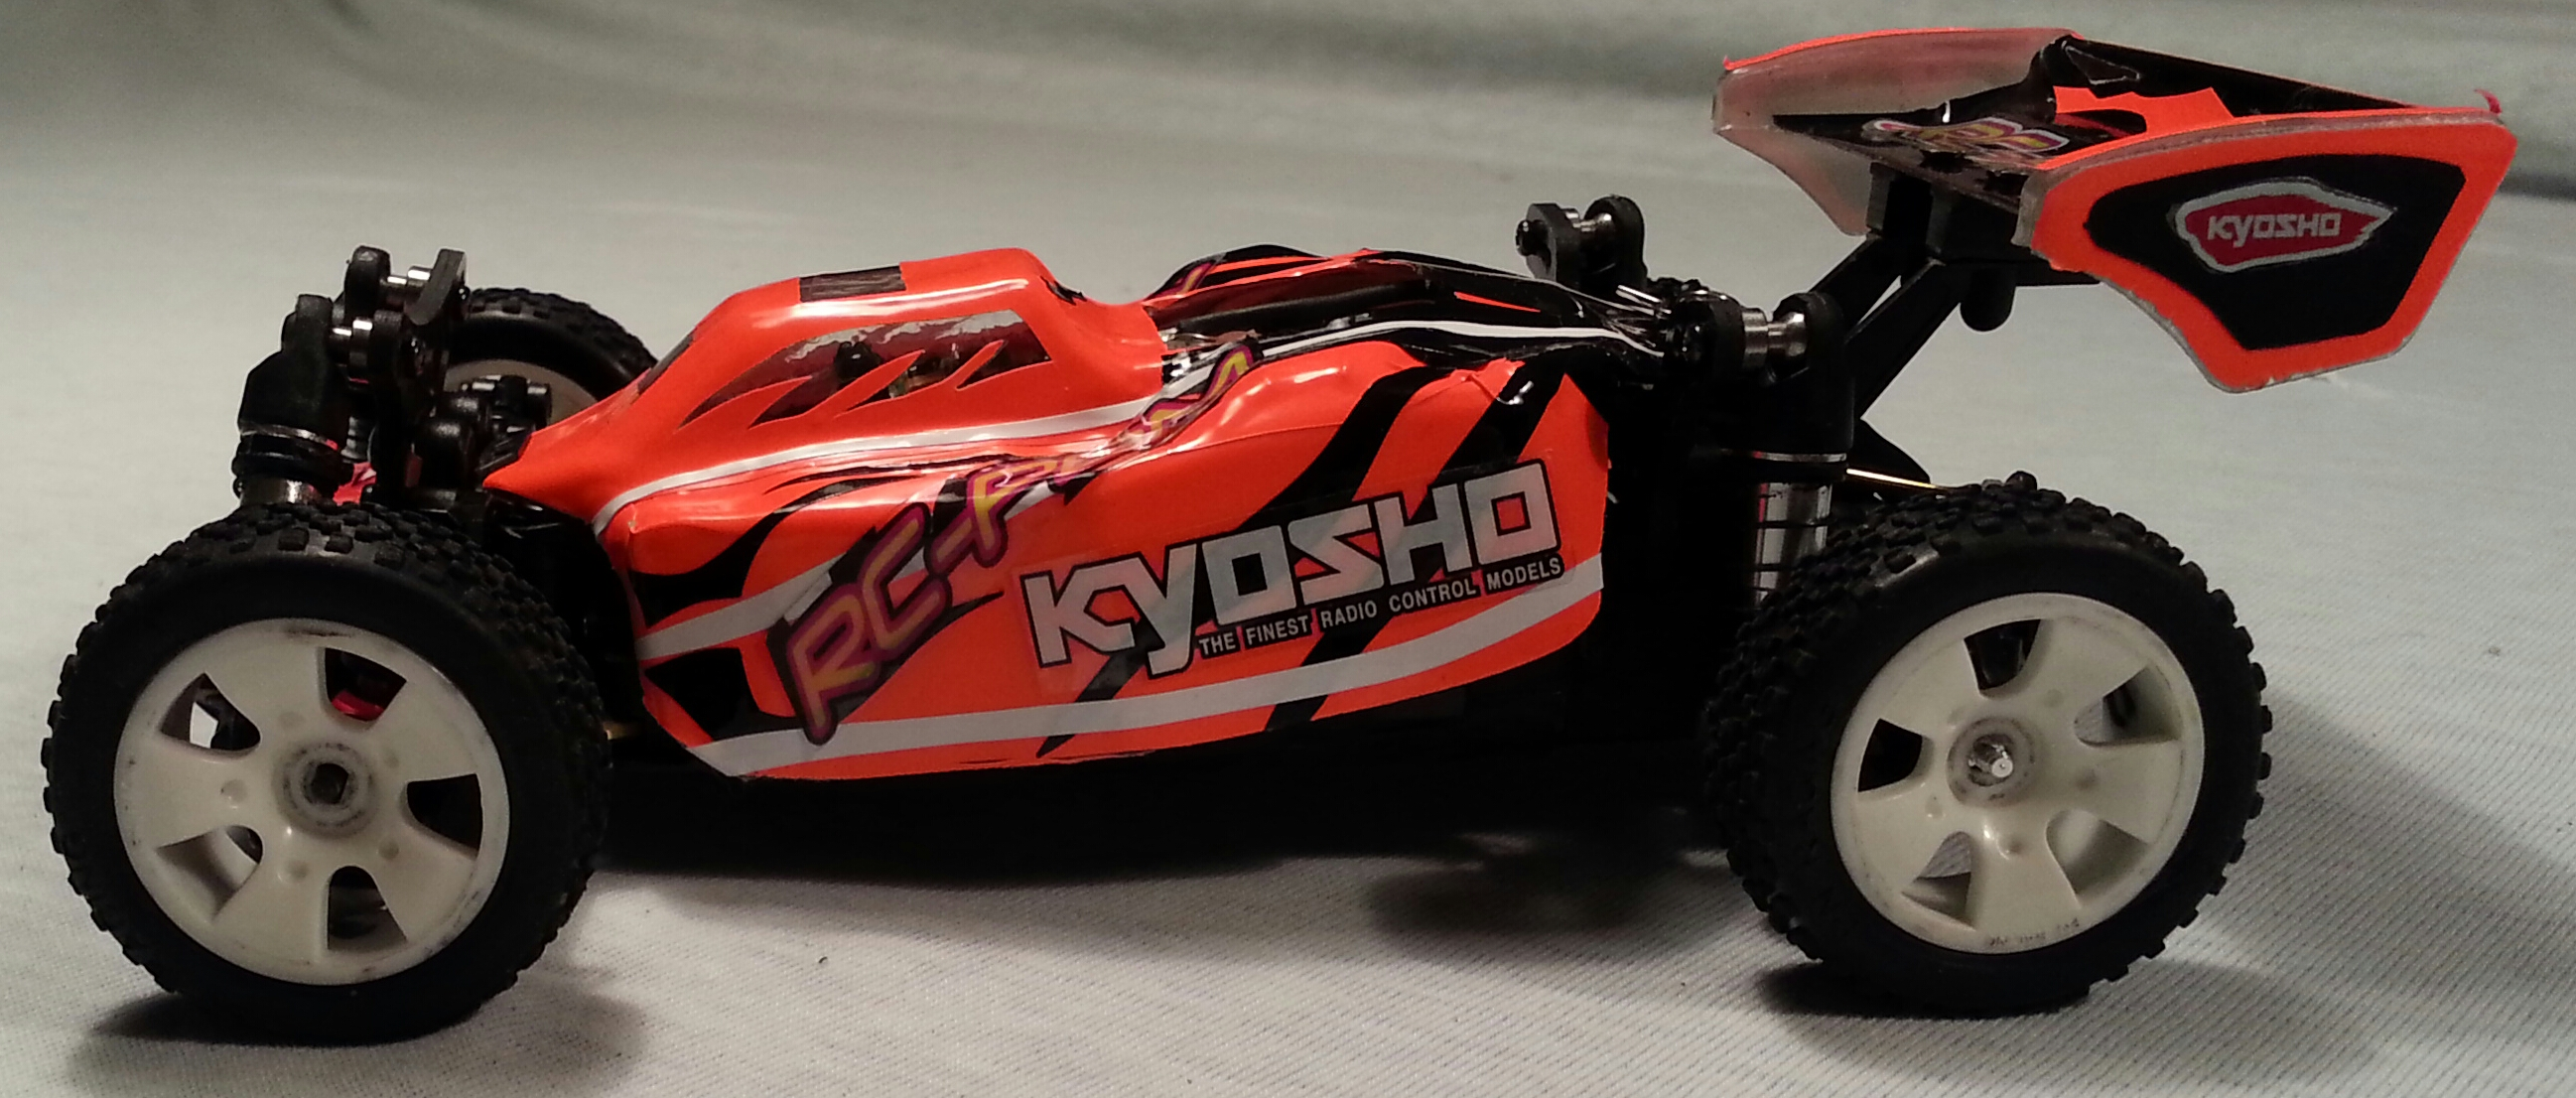 Challenge mini z buggy RC94 2013/2014 - Page 2 603206201401181236431